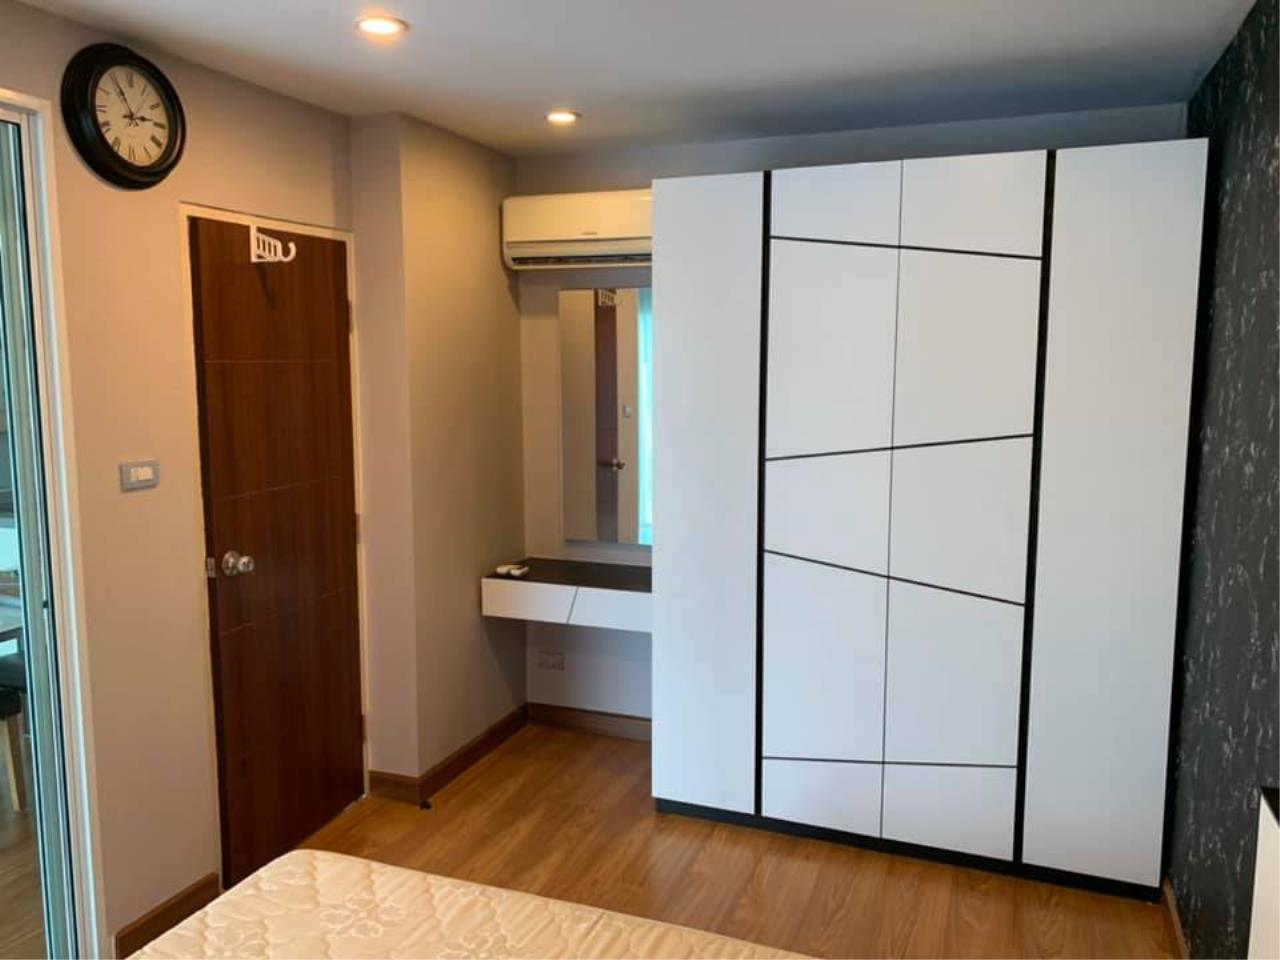 Agent Thawanrat Agency's Condo for rental TOURMALINE GOLD SATHORN – TAKSIN Near BTS.Krung Thon Buri. 1 bedroom,1 bathroom. size 40 sqm.Floor 10 th. fully furnished Ready to move in 3